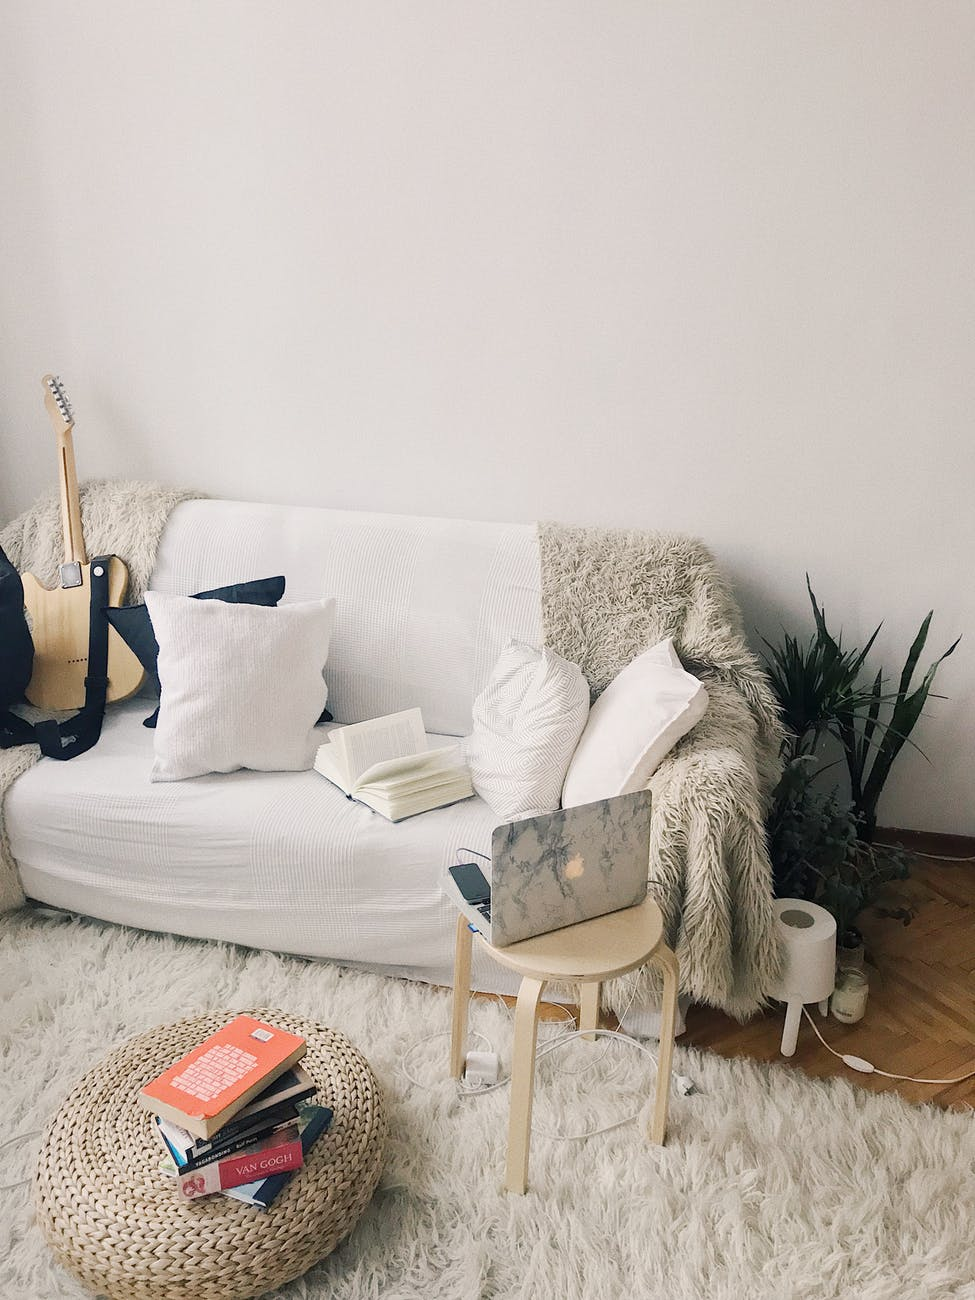 How to Pick the Perfect Sofa for Your Home